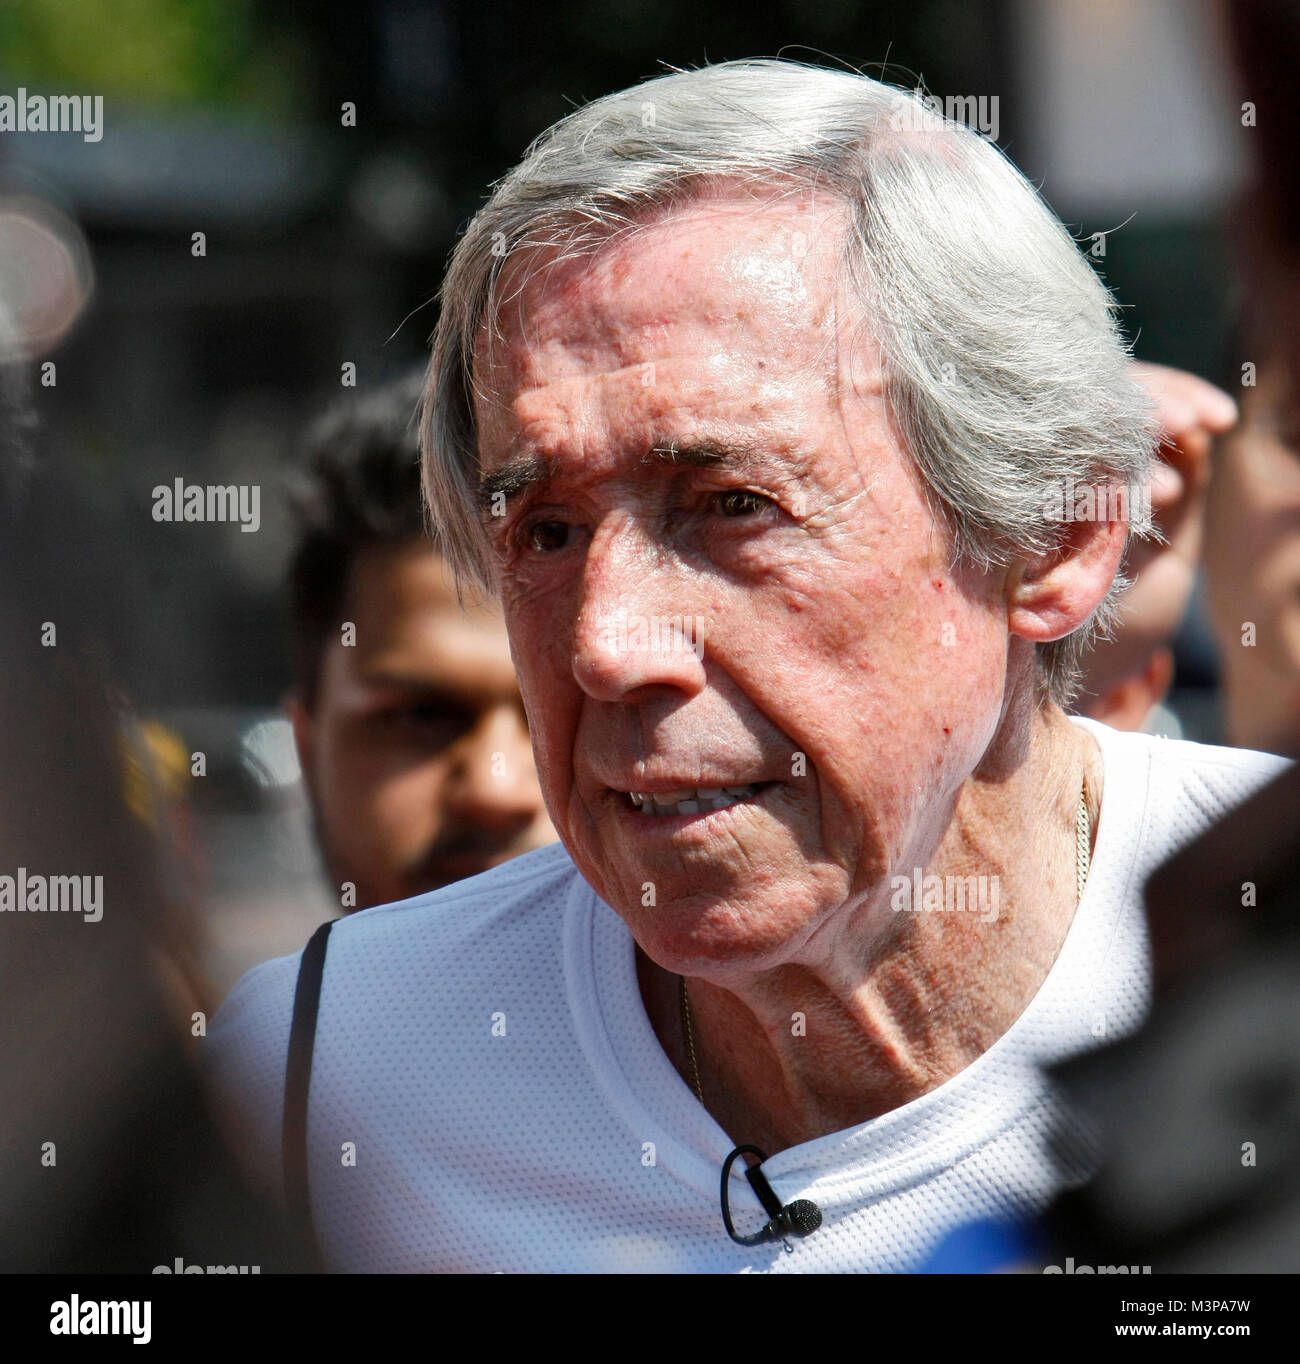 25/07/2012. London, U.K.  Gordon Banks, ex England goalkeeper, takes the torch down Wembley Way. The Olympic torch - Stock Image